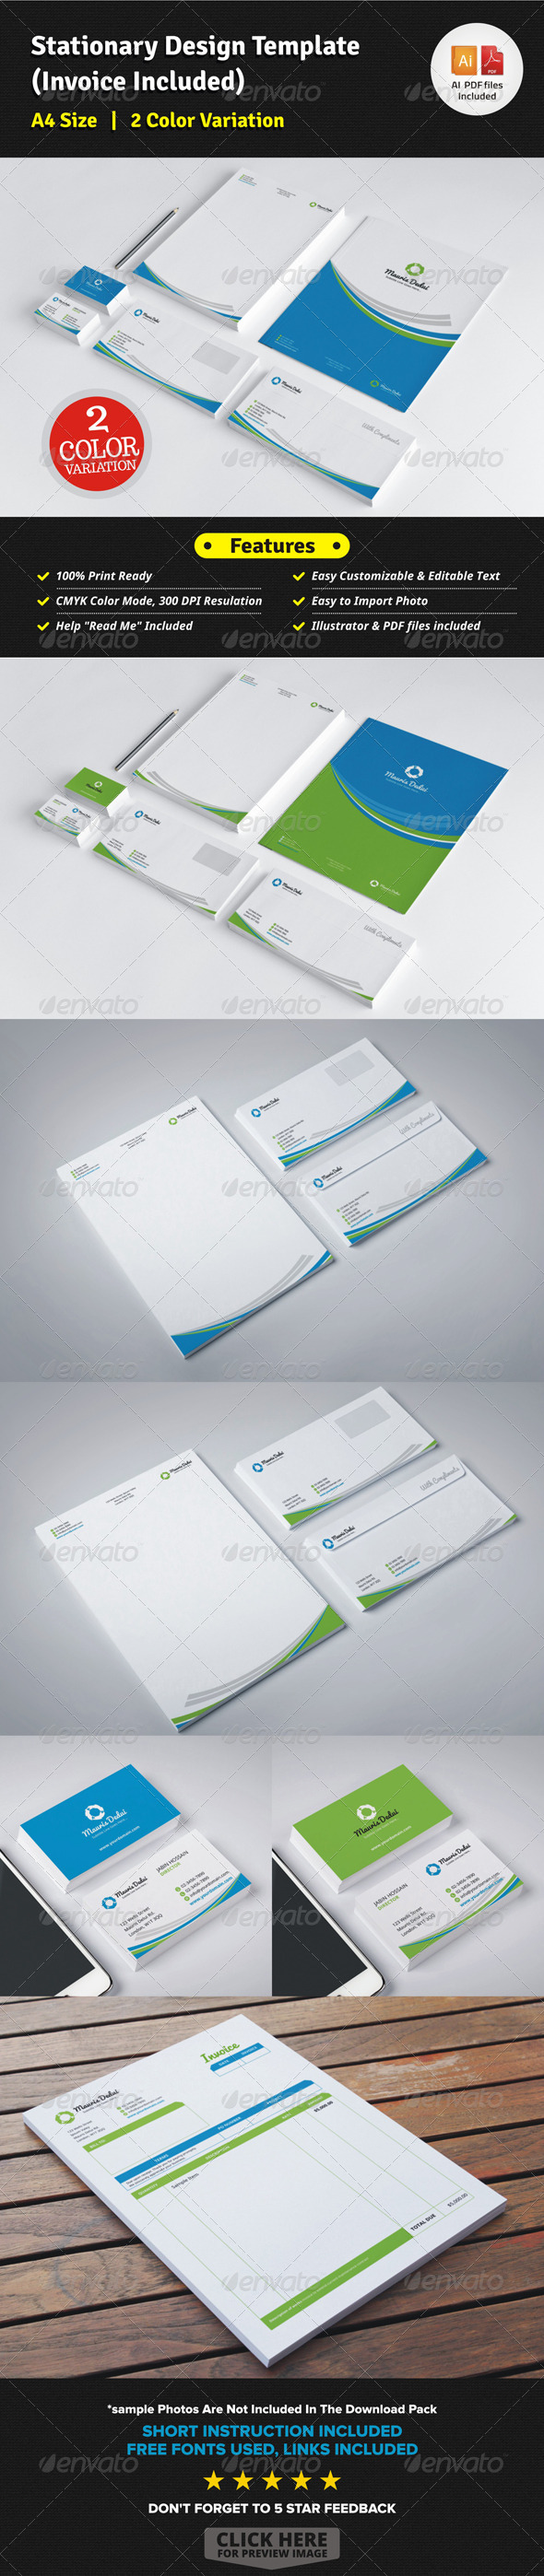 Stationary Design Template (Invoice Included) - Stationery Print Templates